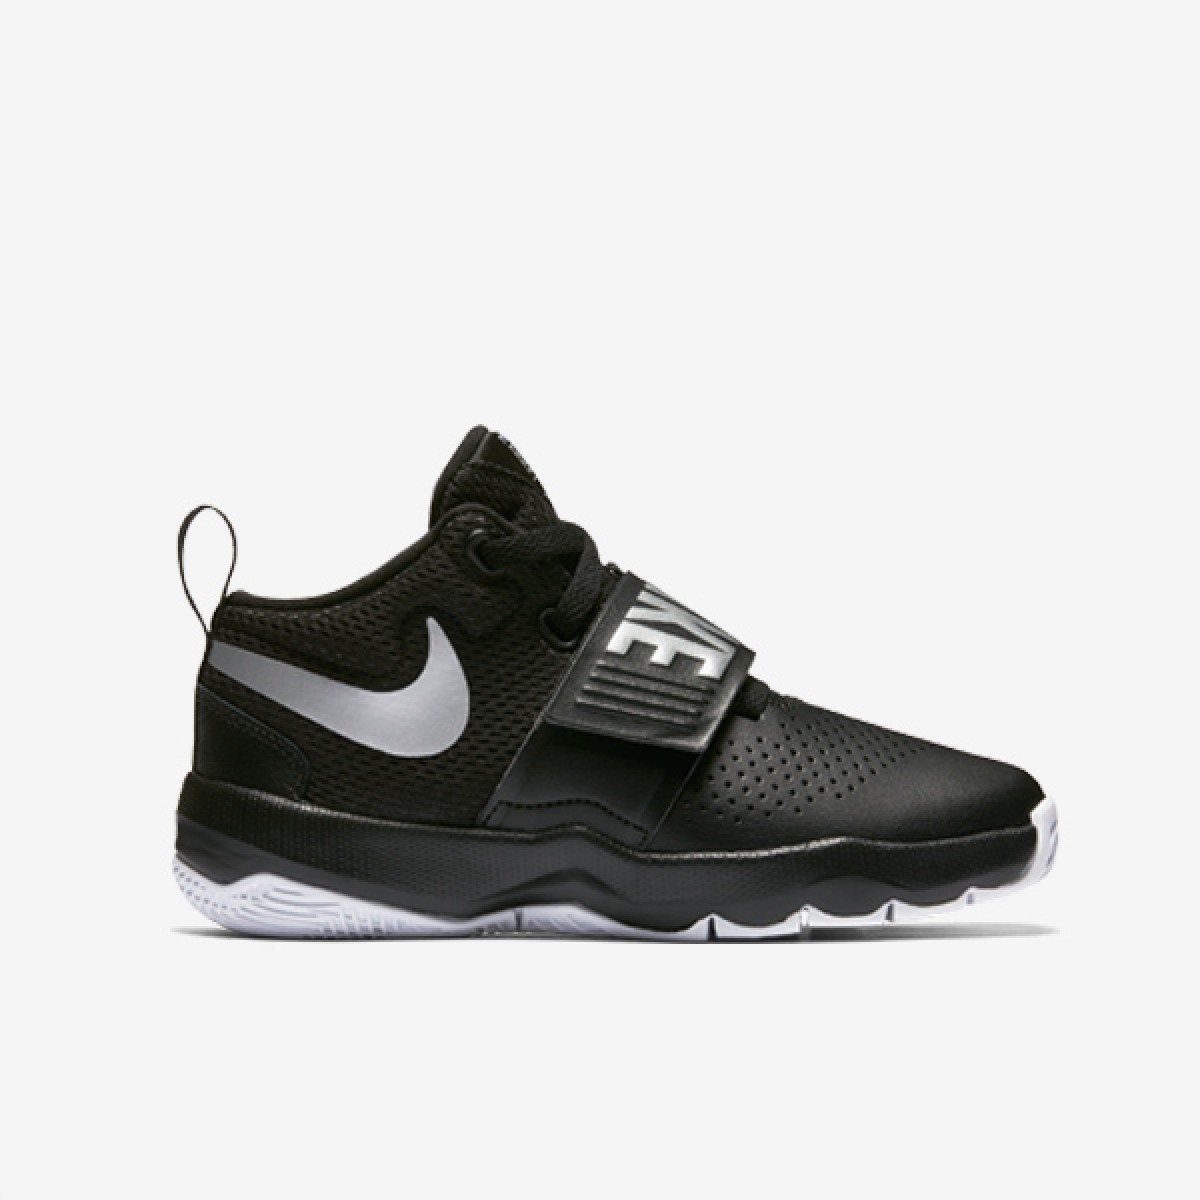 Nike Team Hustle D8 'Black'